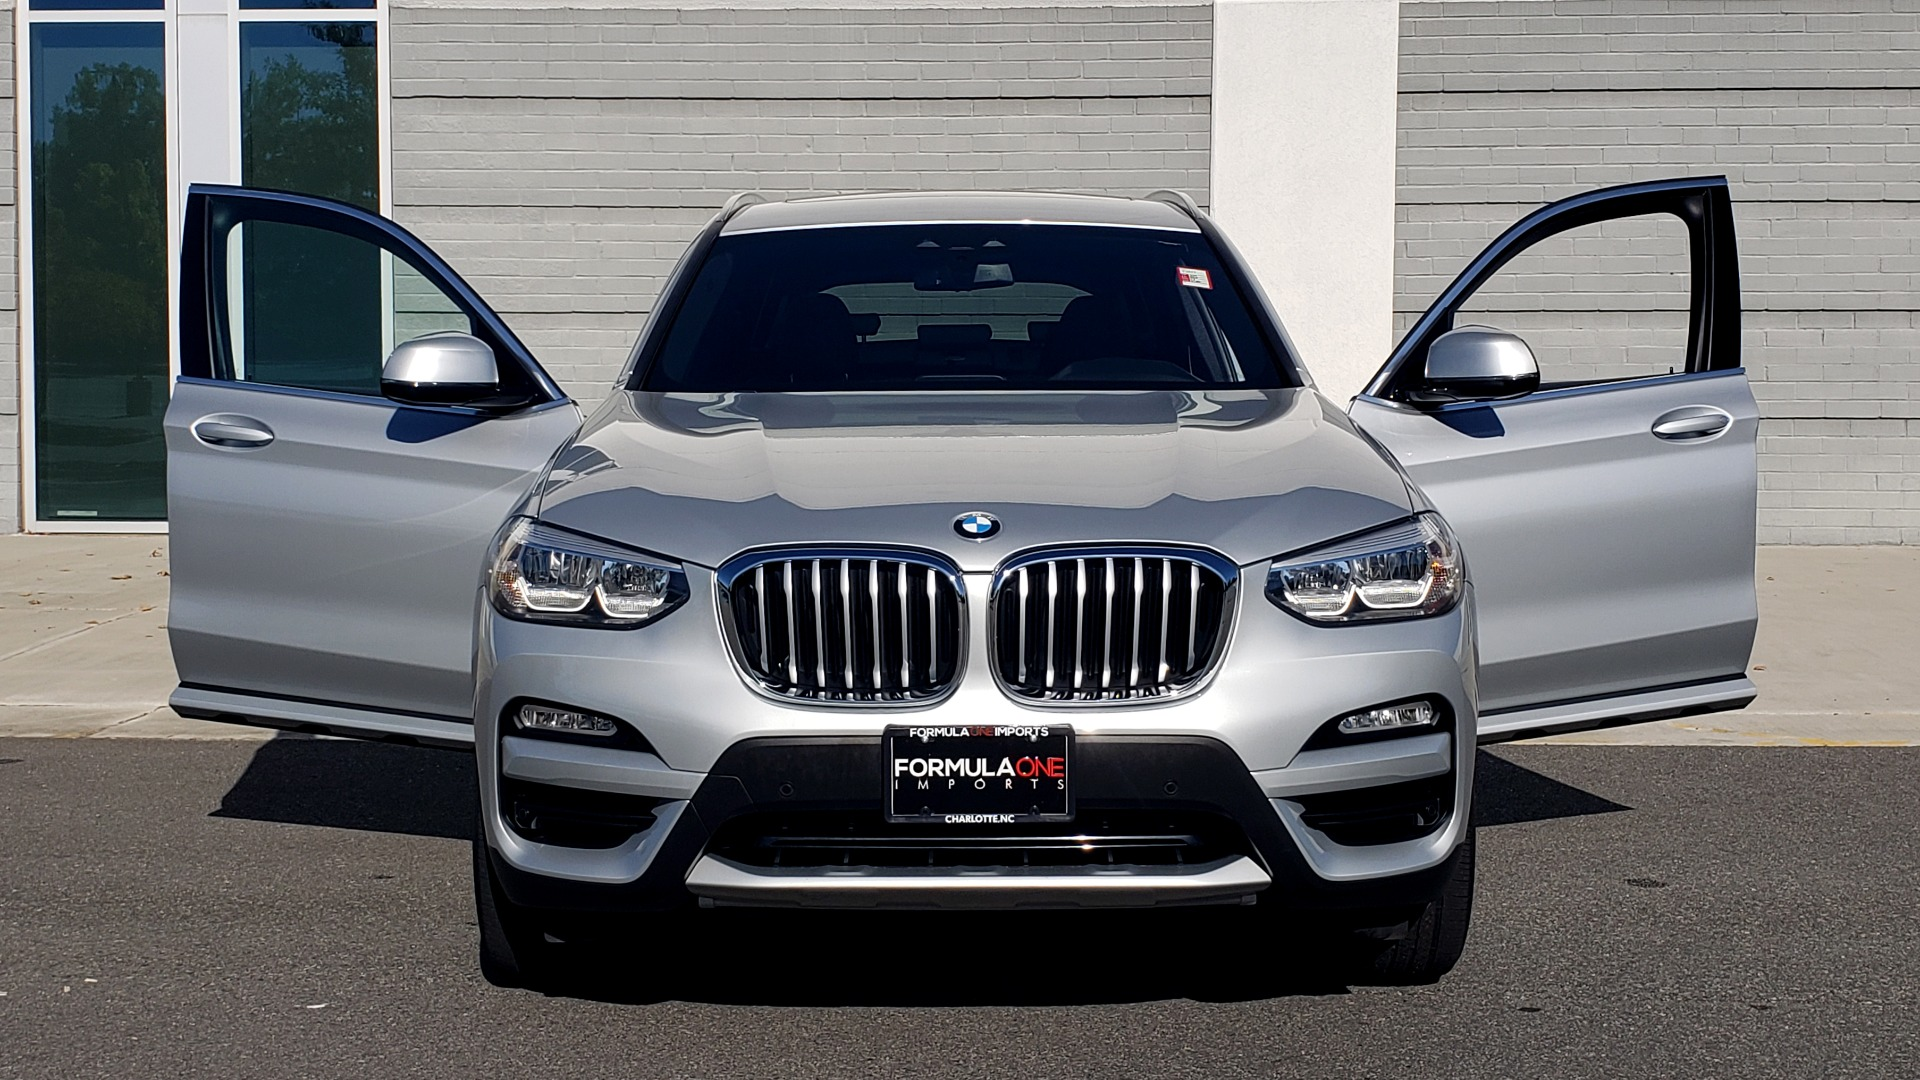 Used 2019 BMW X3 XDRIVE30I / DRVR ASST / PANO-ROOF / HTD STS / REARVIEW for sale $41,995 at Formula Imports in Charlotte NC 28227 24